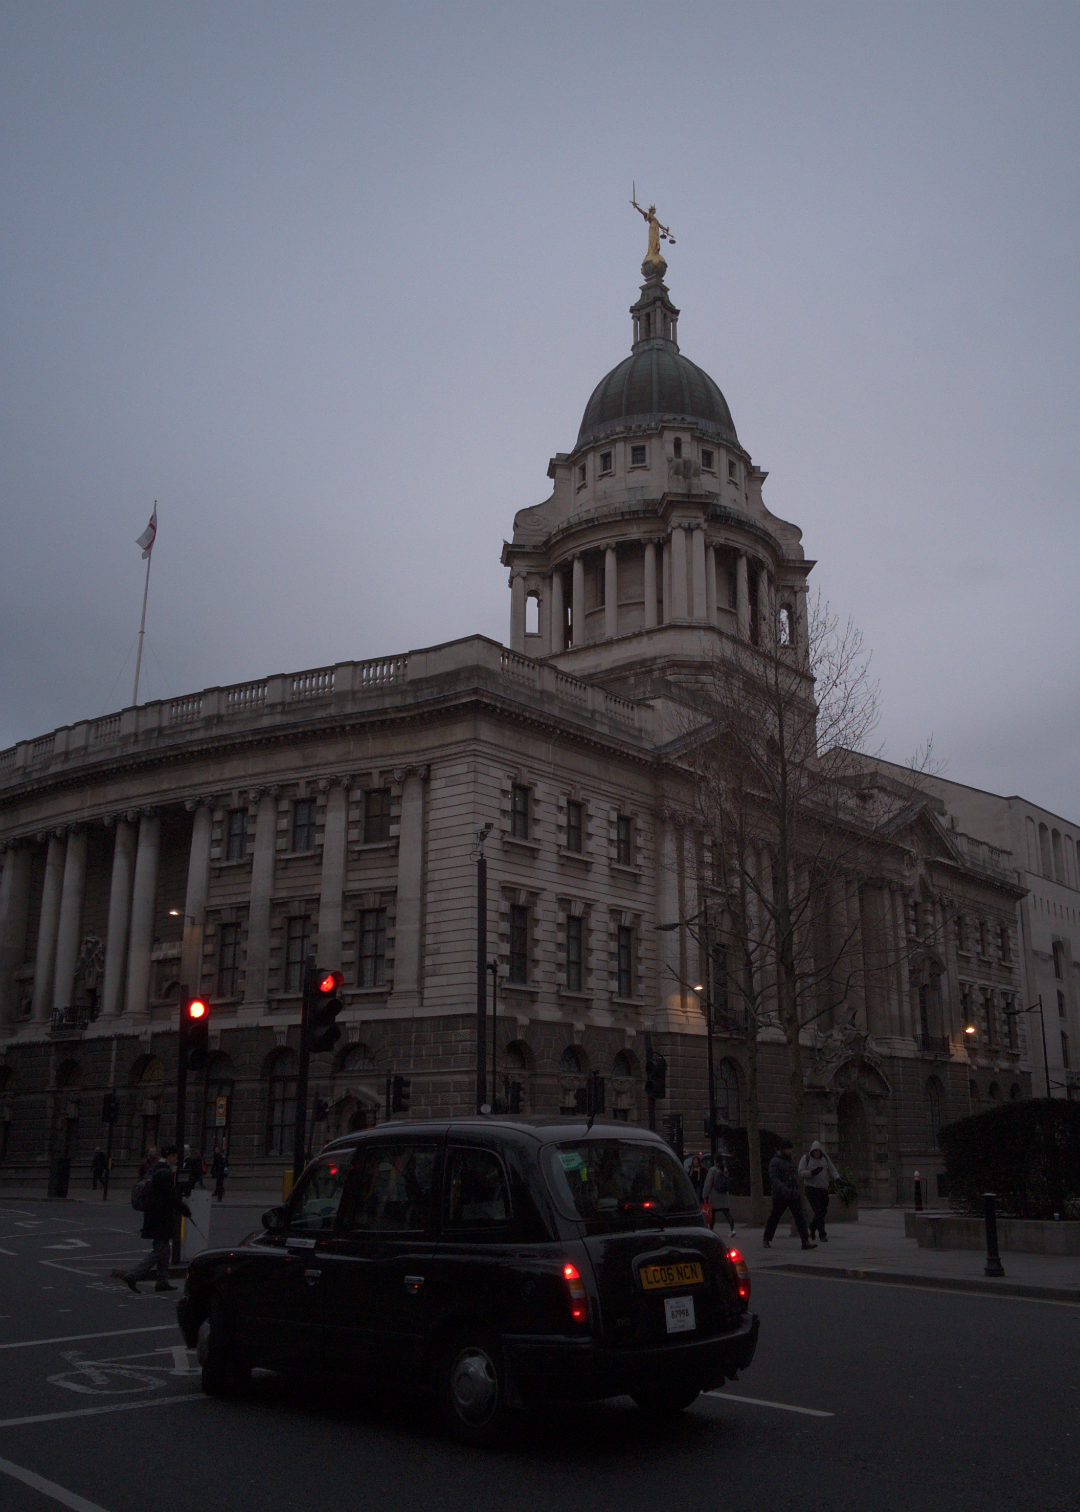 Central Criminal Court (Old Bailey), London, photographed on 8 March 2016